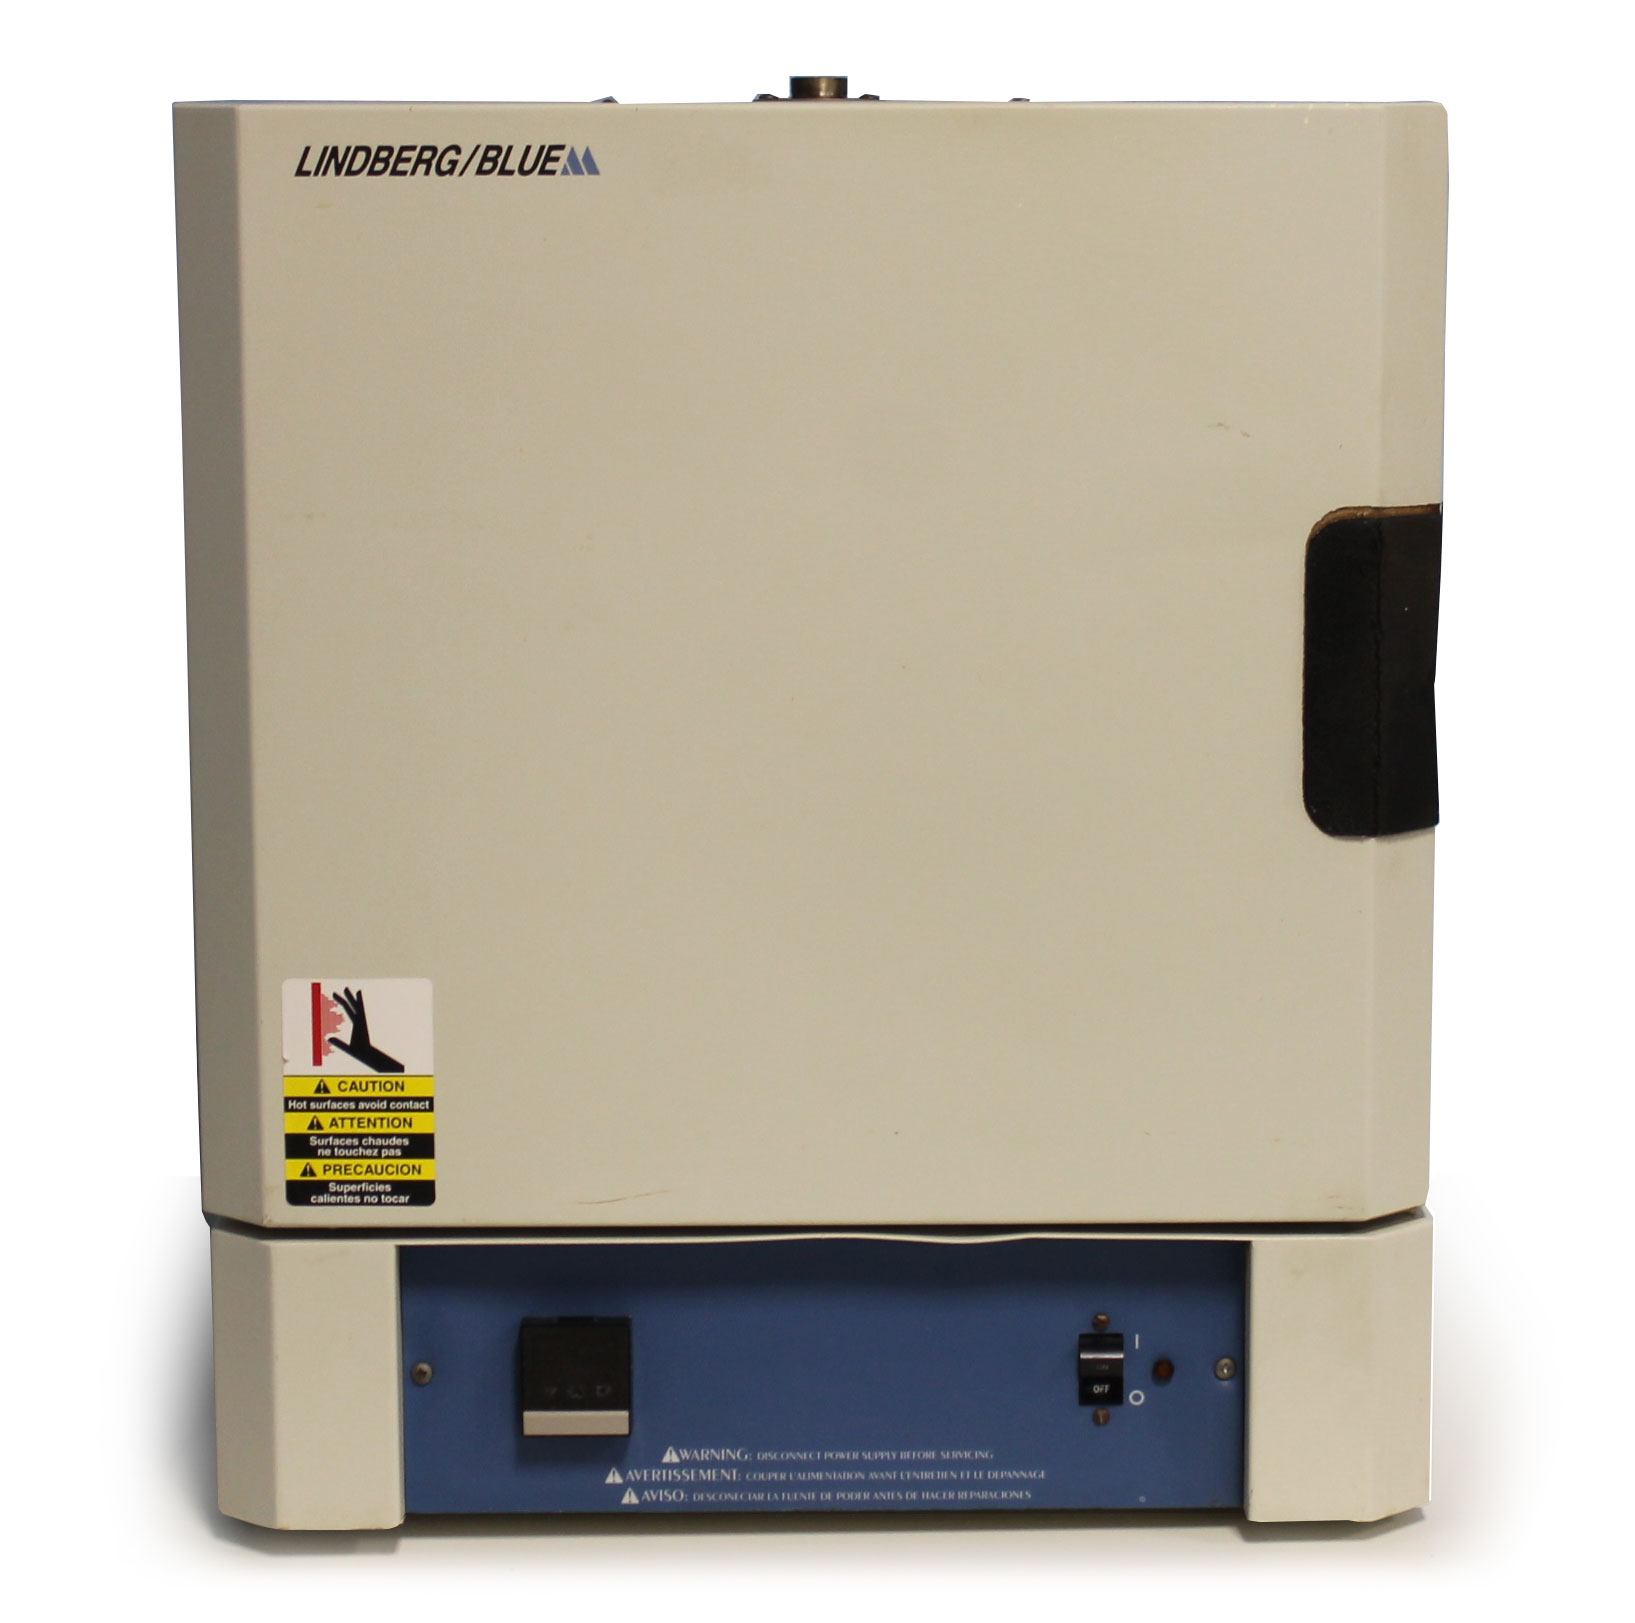 Blue M BF51894C-1 Box Furnace 18.4L